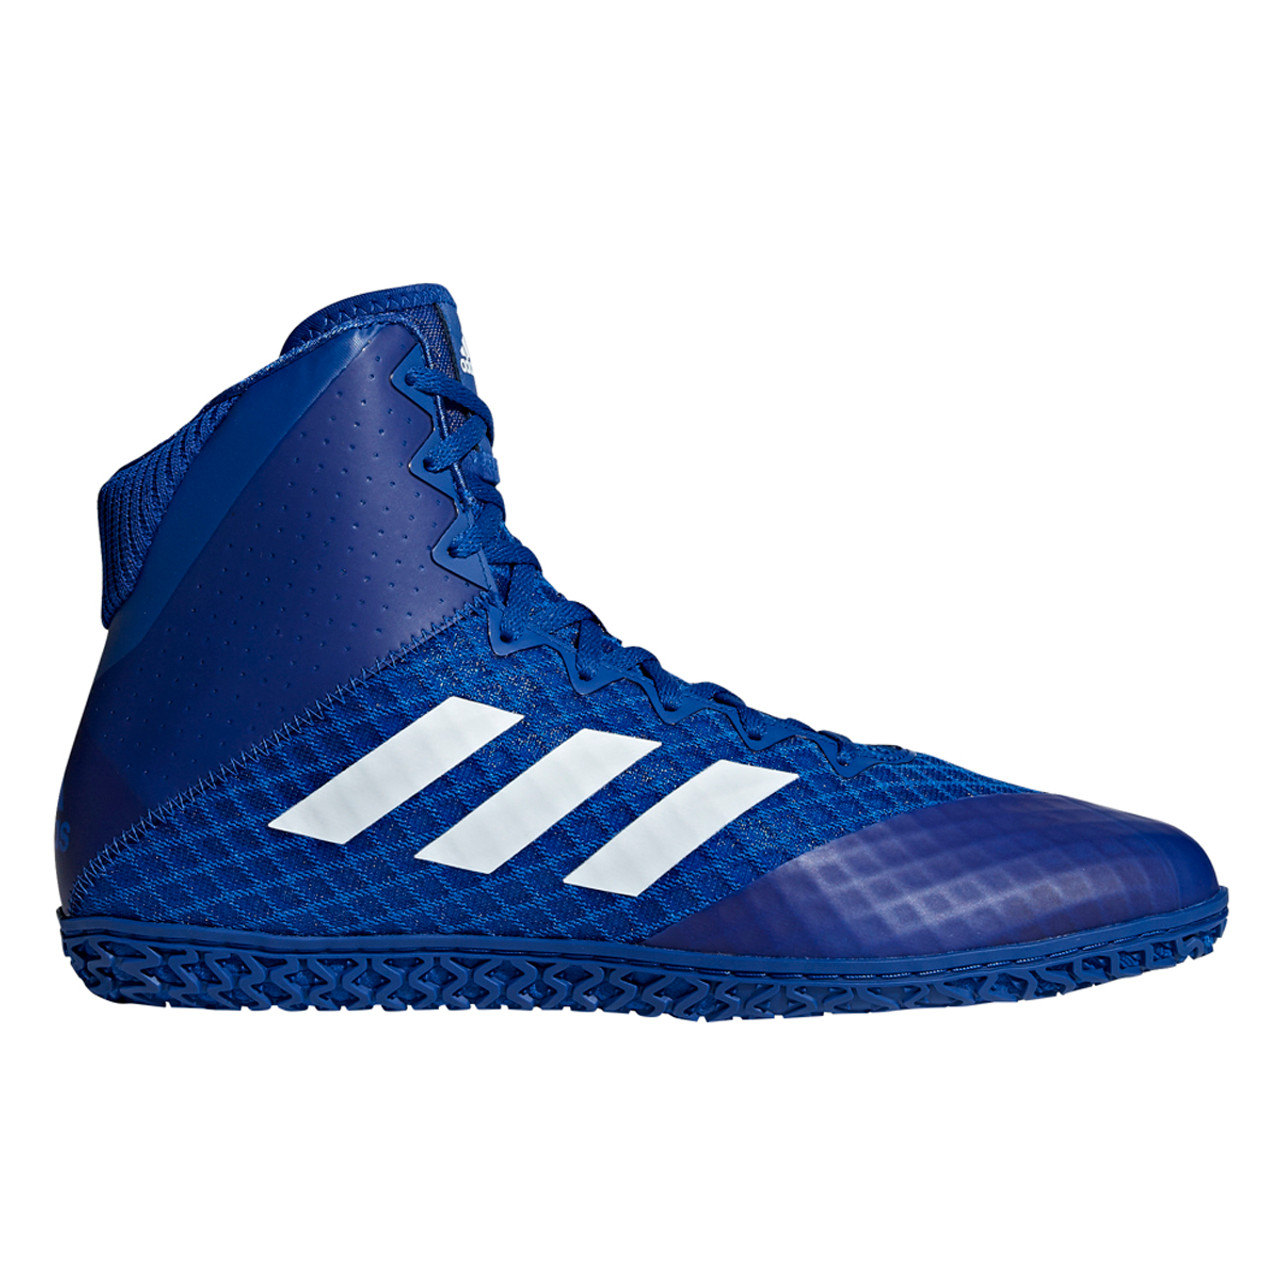 301a7b964214 Adidas Mat Wizard 4 Men s Wrestling Shoes AC6973 - Royal